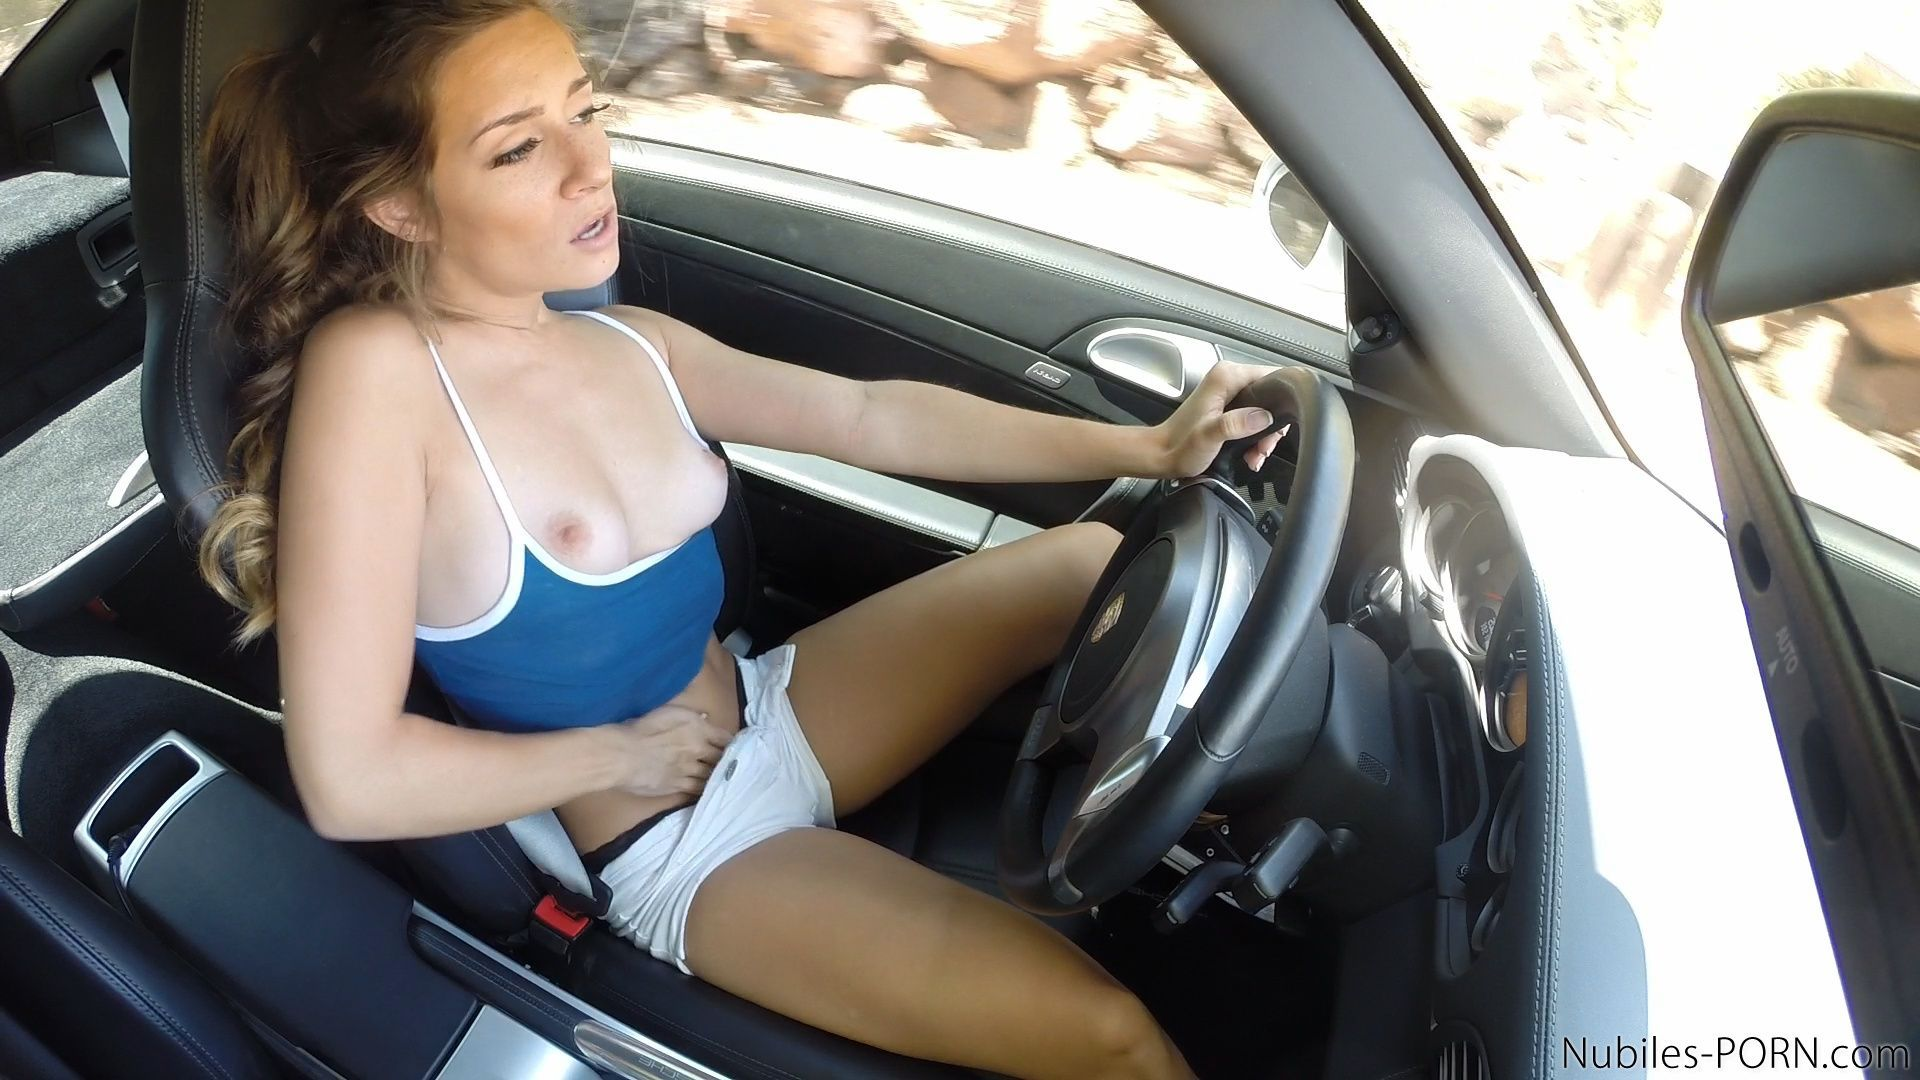 best of Car in pictures nude Wife